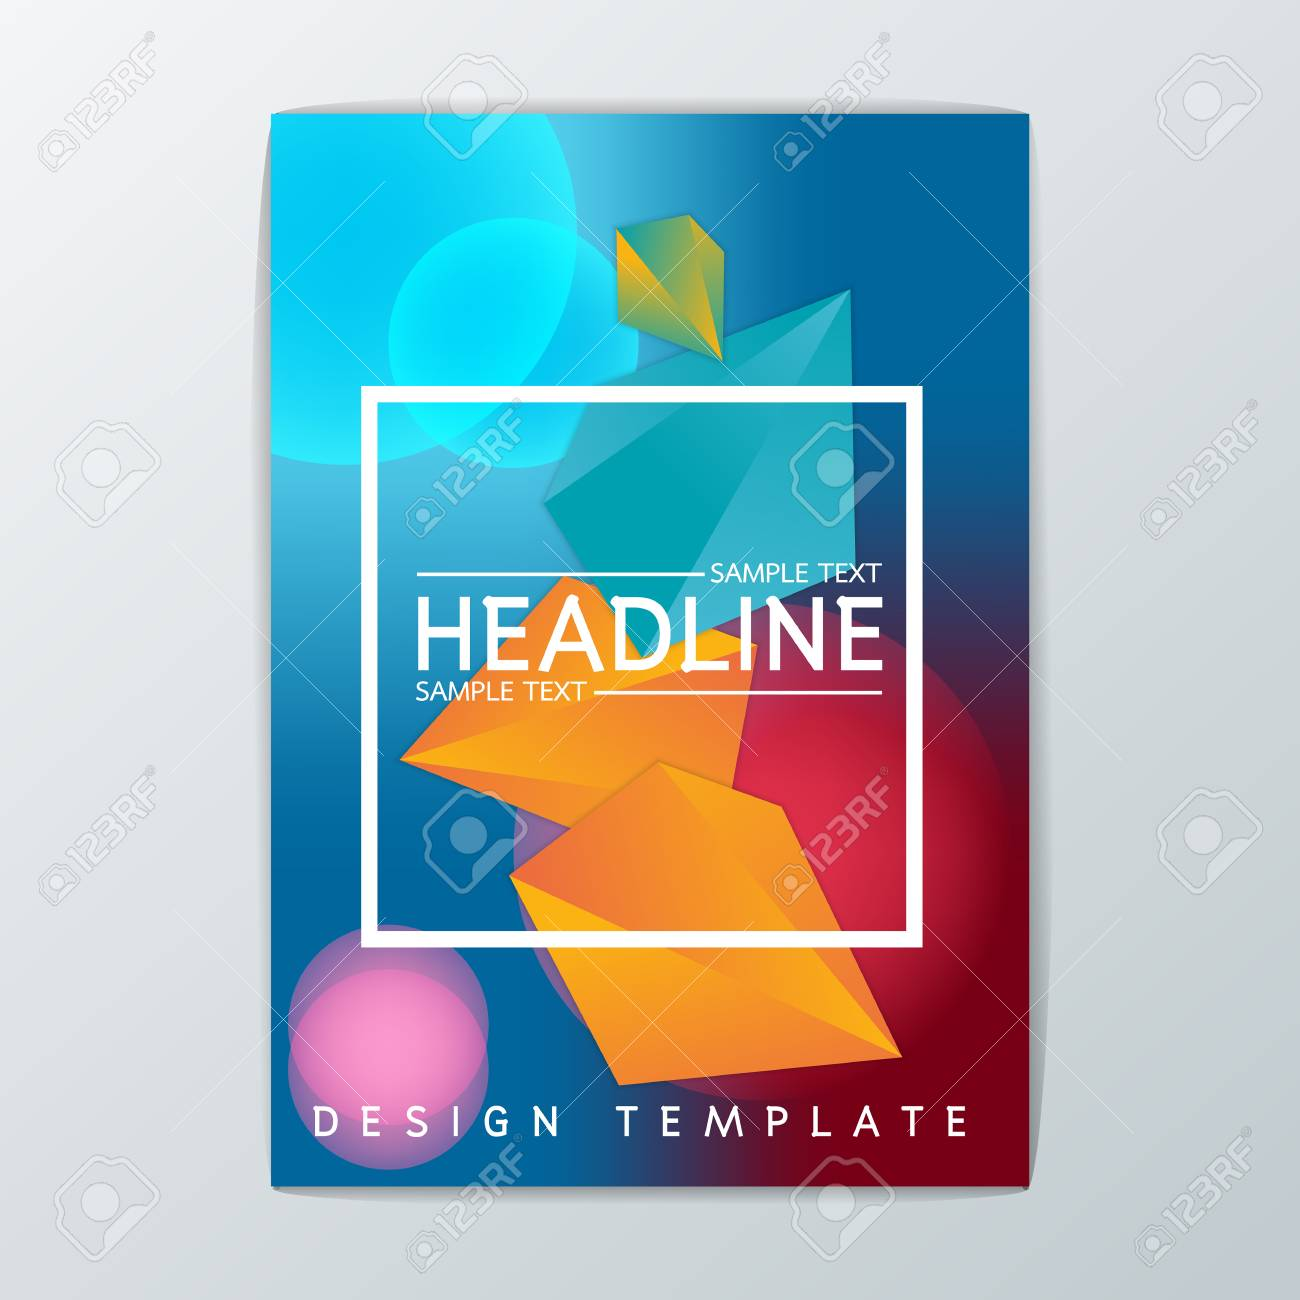 vector abstract brochure background design template flyer layout